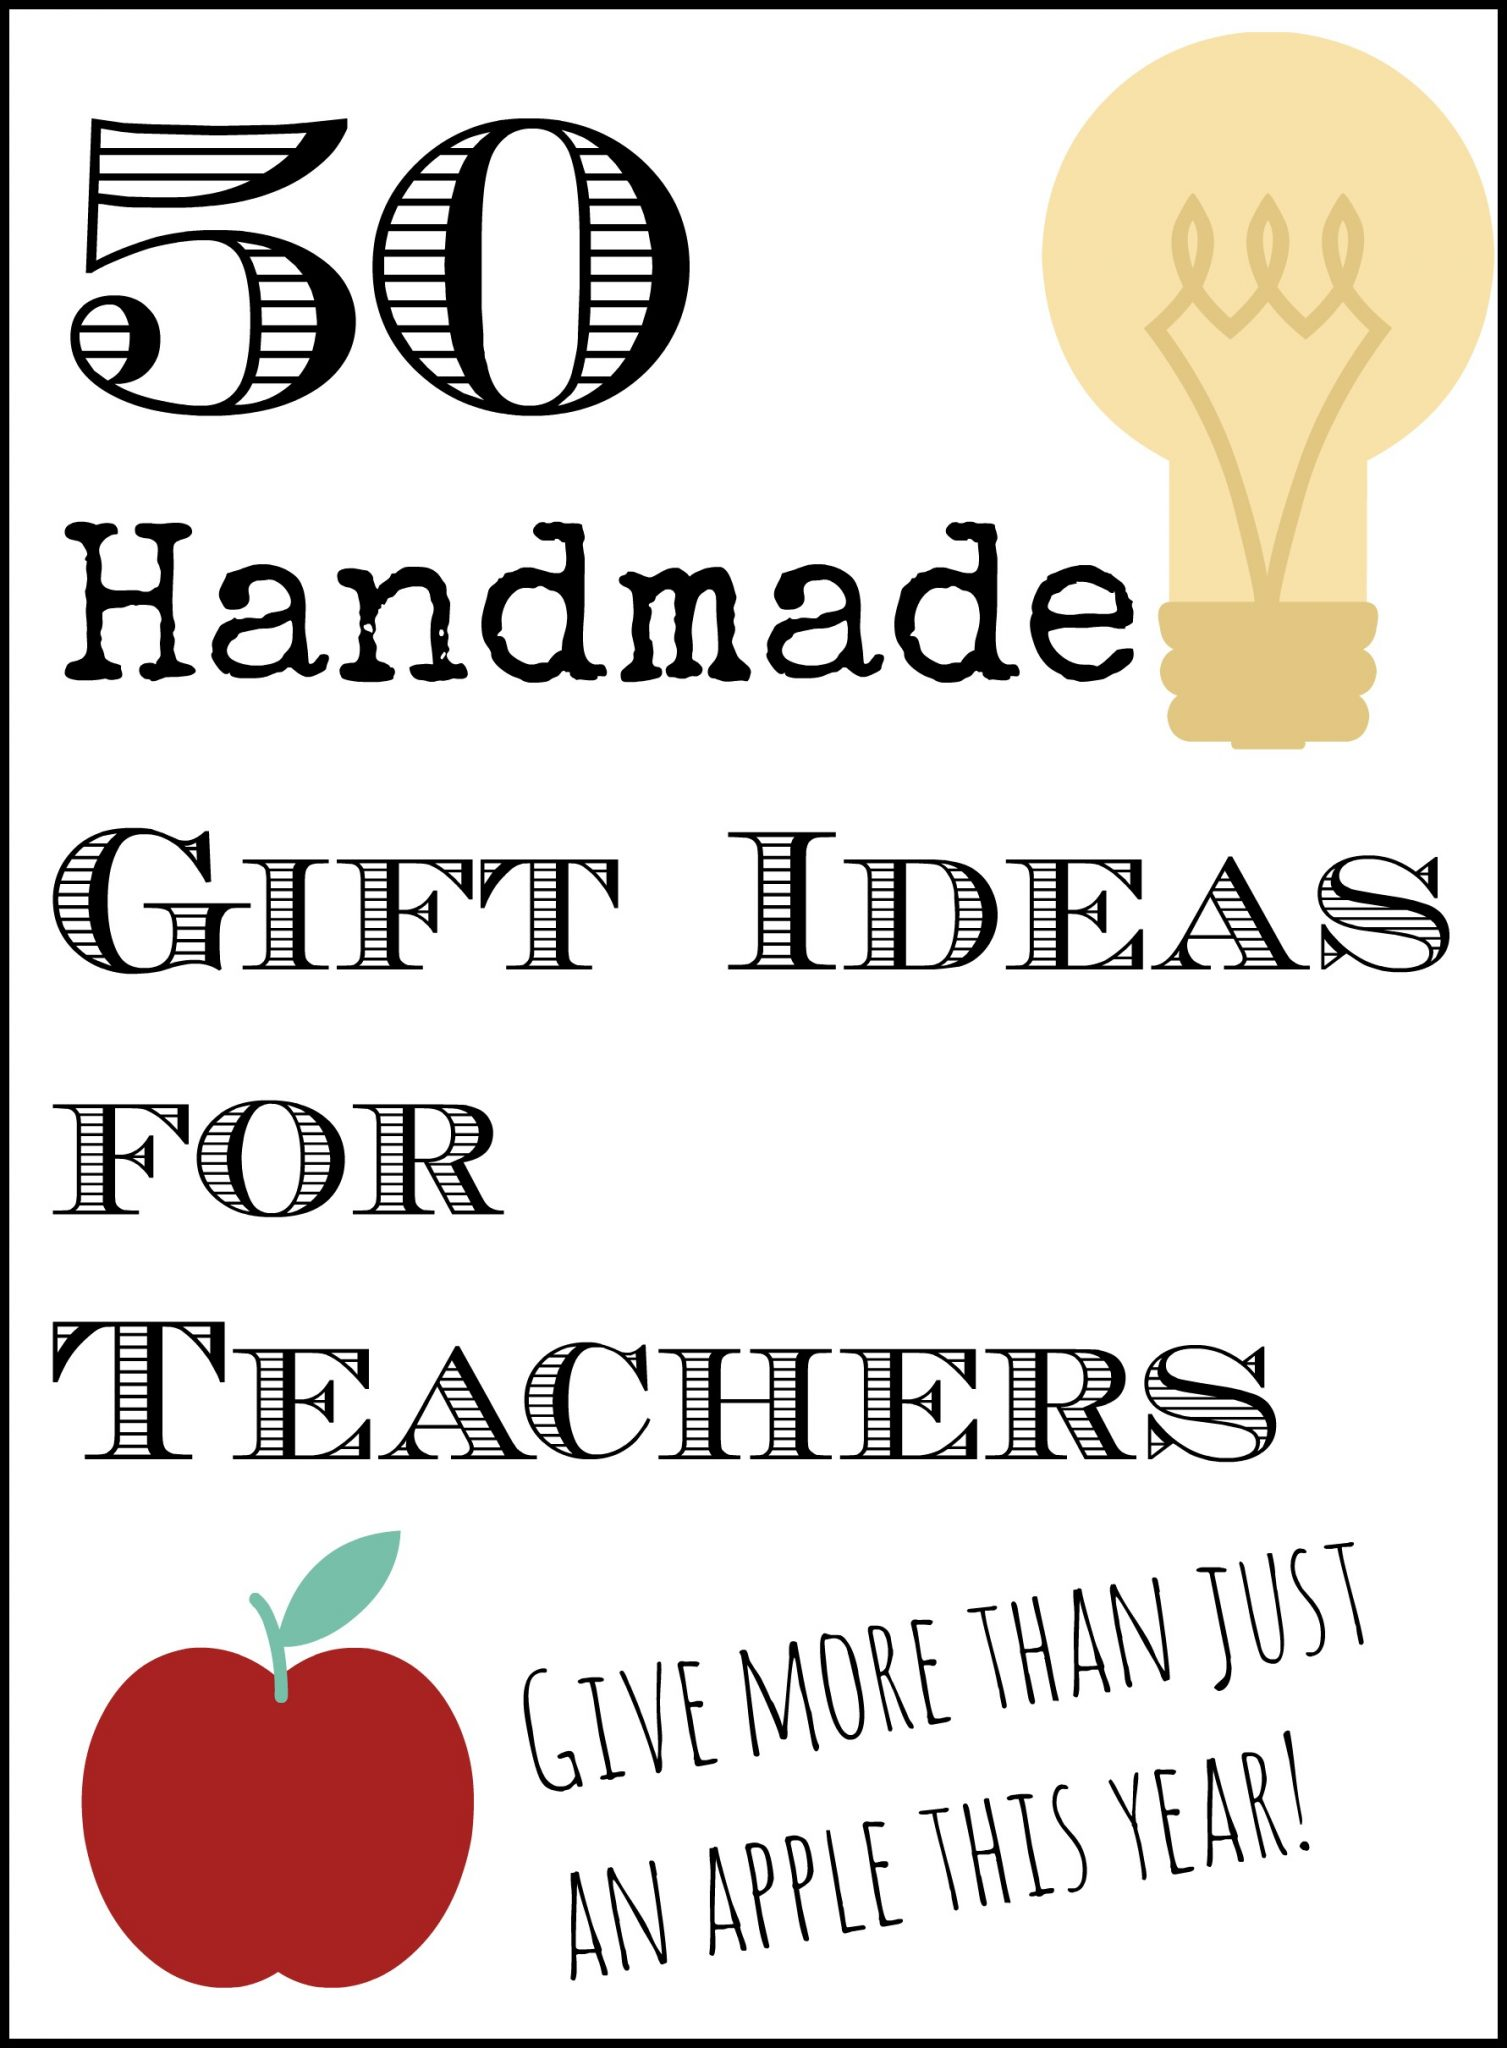 Get 50 handmade gift ideas for teachers here! With pictures so you can click to see instructions on how to make it yourself.